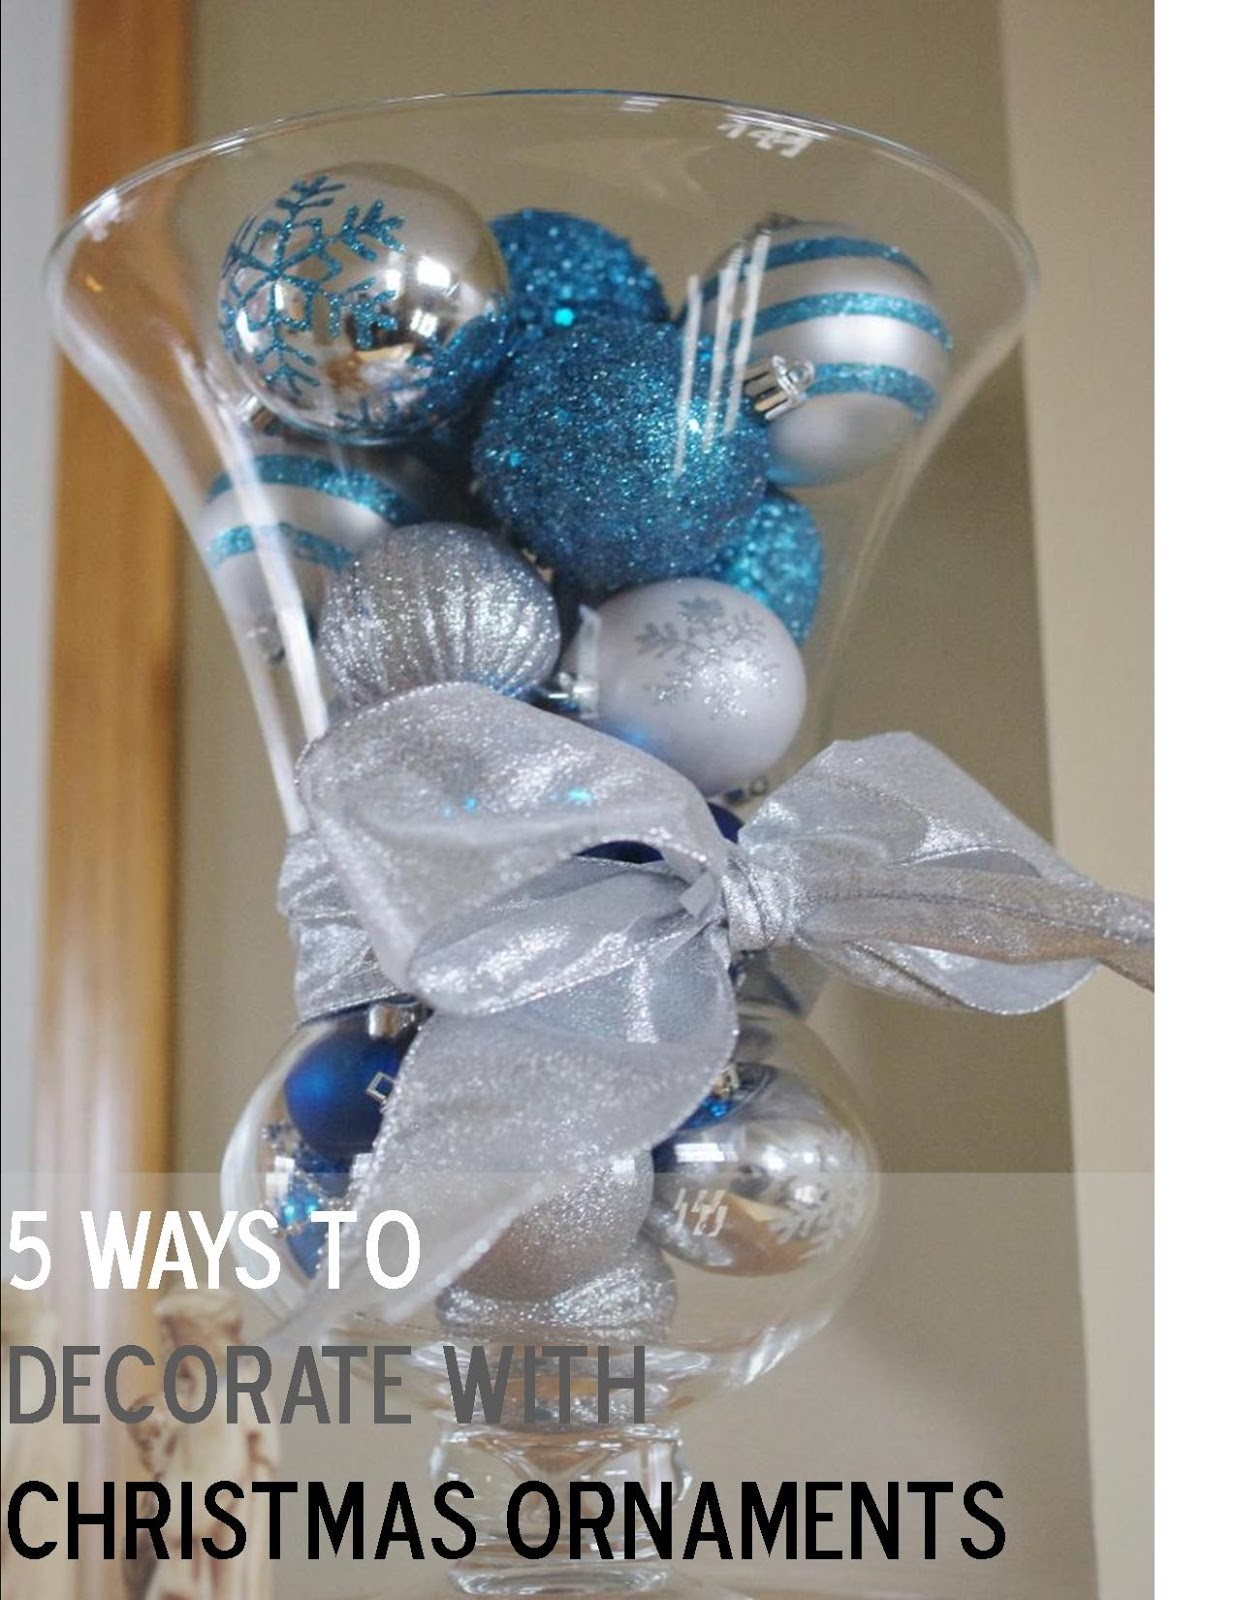 A Little Knick Knack: 5 Ways to Decorate with Christmas Ornaments